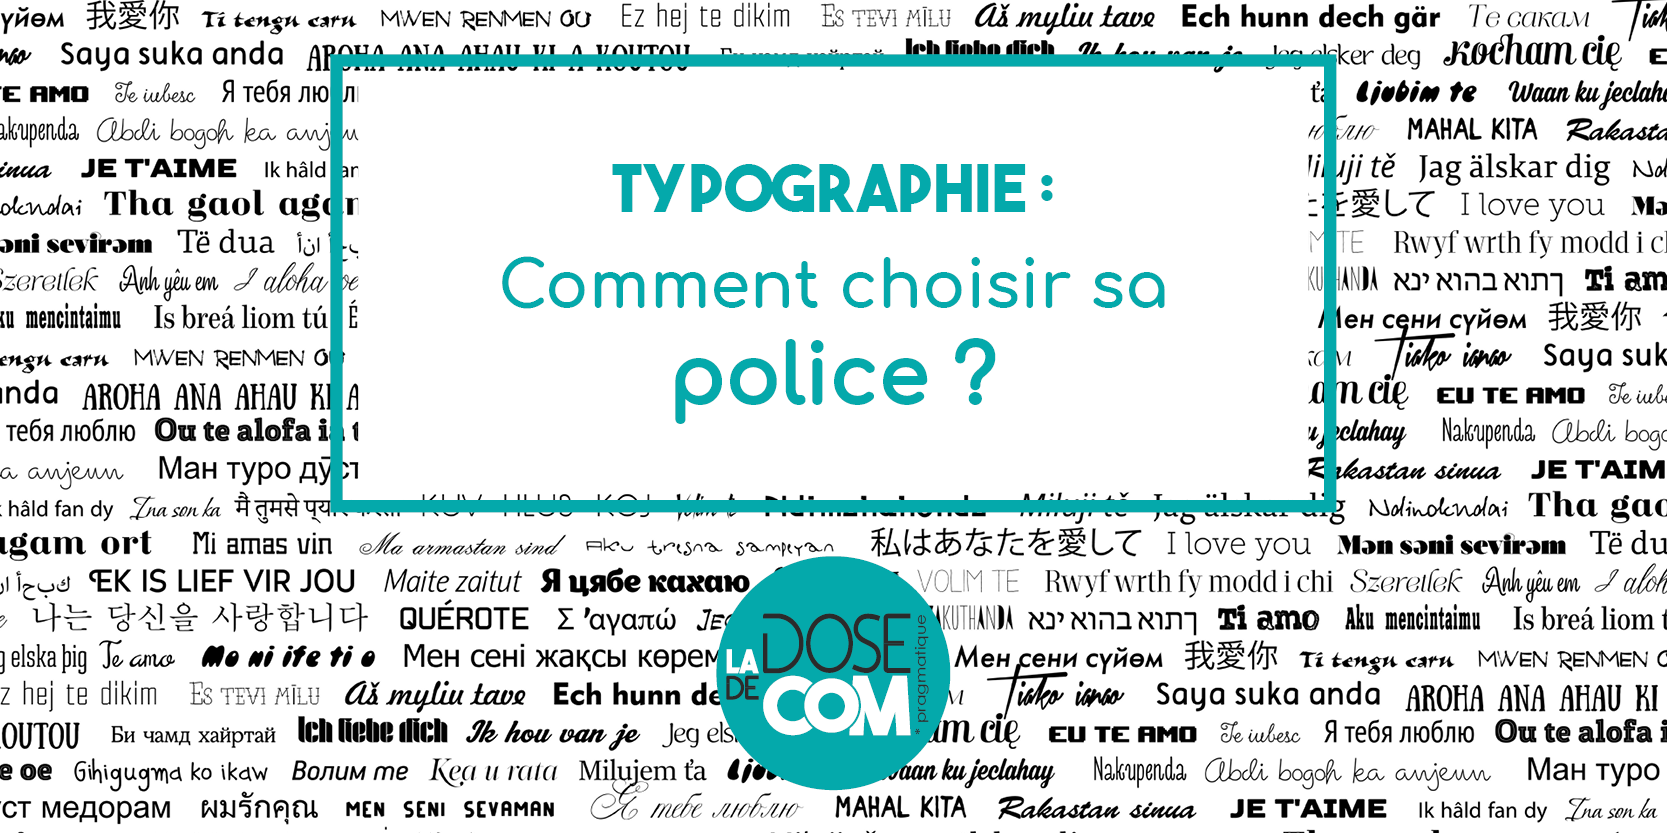 Typographie : Comment choisir sa police ?